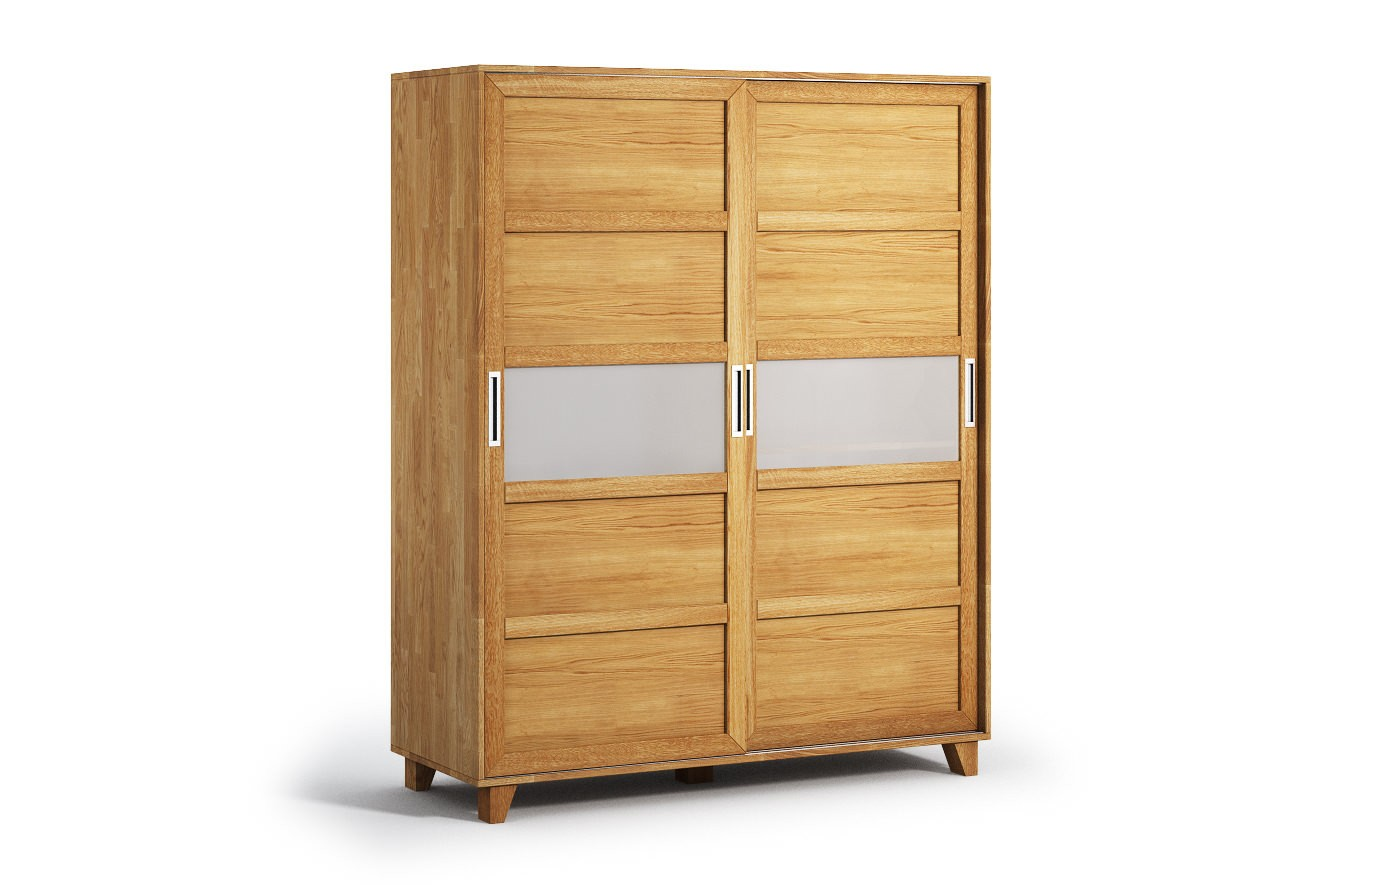 phoenix in eiche rustikal kleiderschrank nach ma. Black Bedroom Furniture Sets. Home Design Ideas